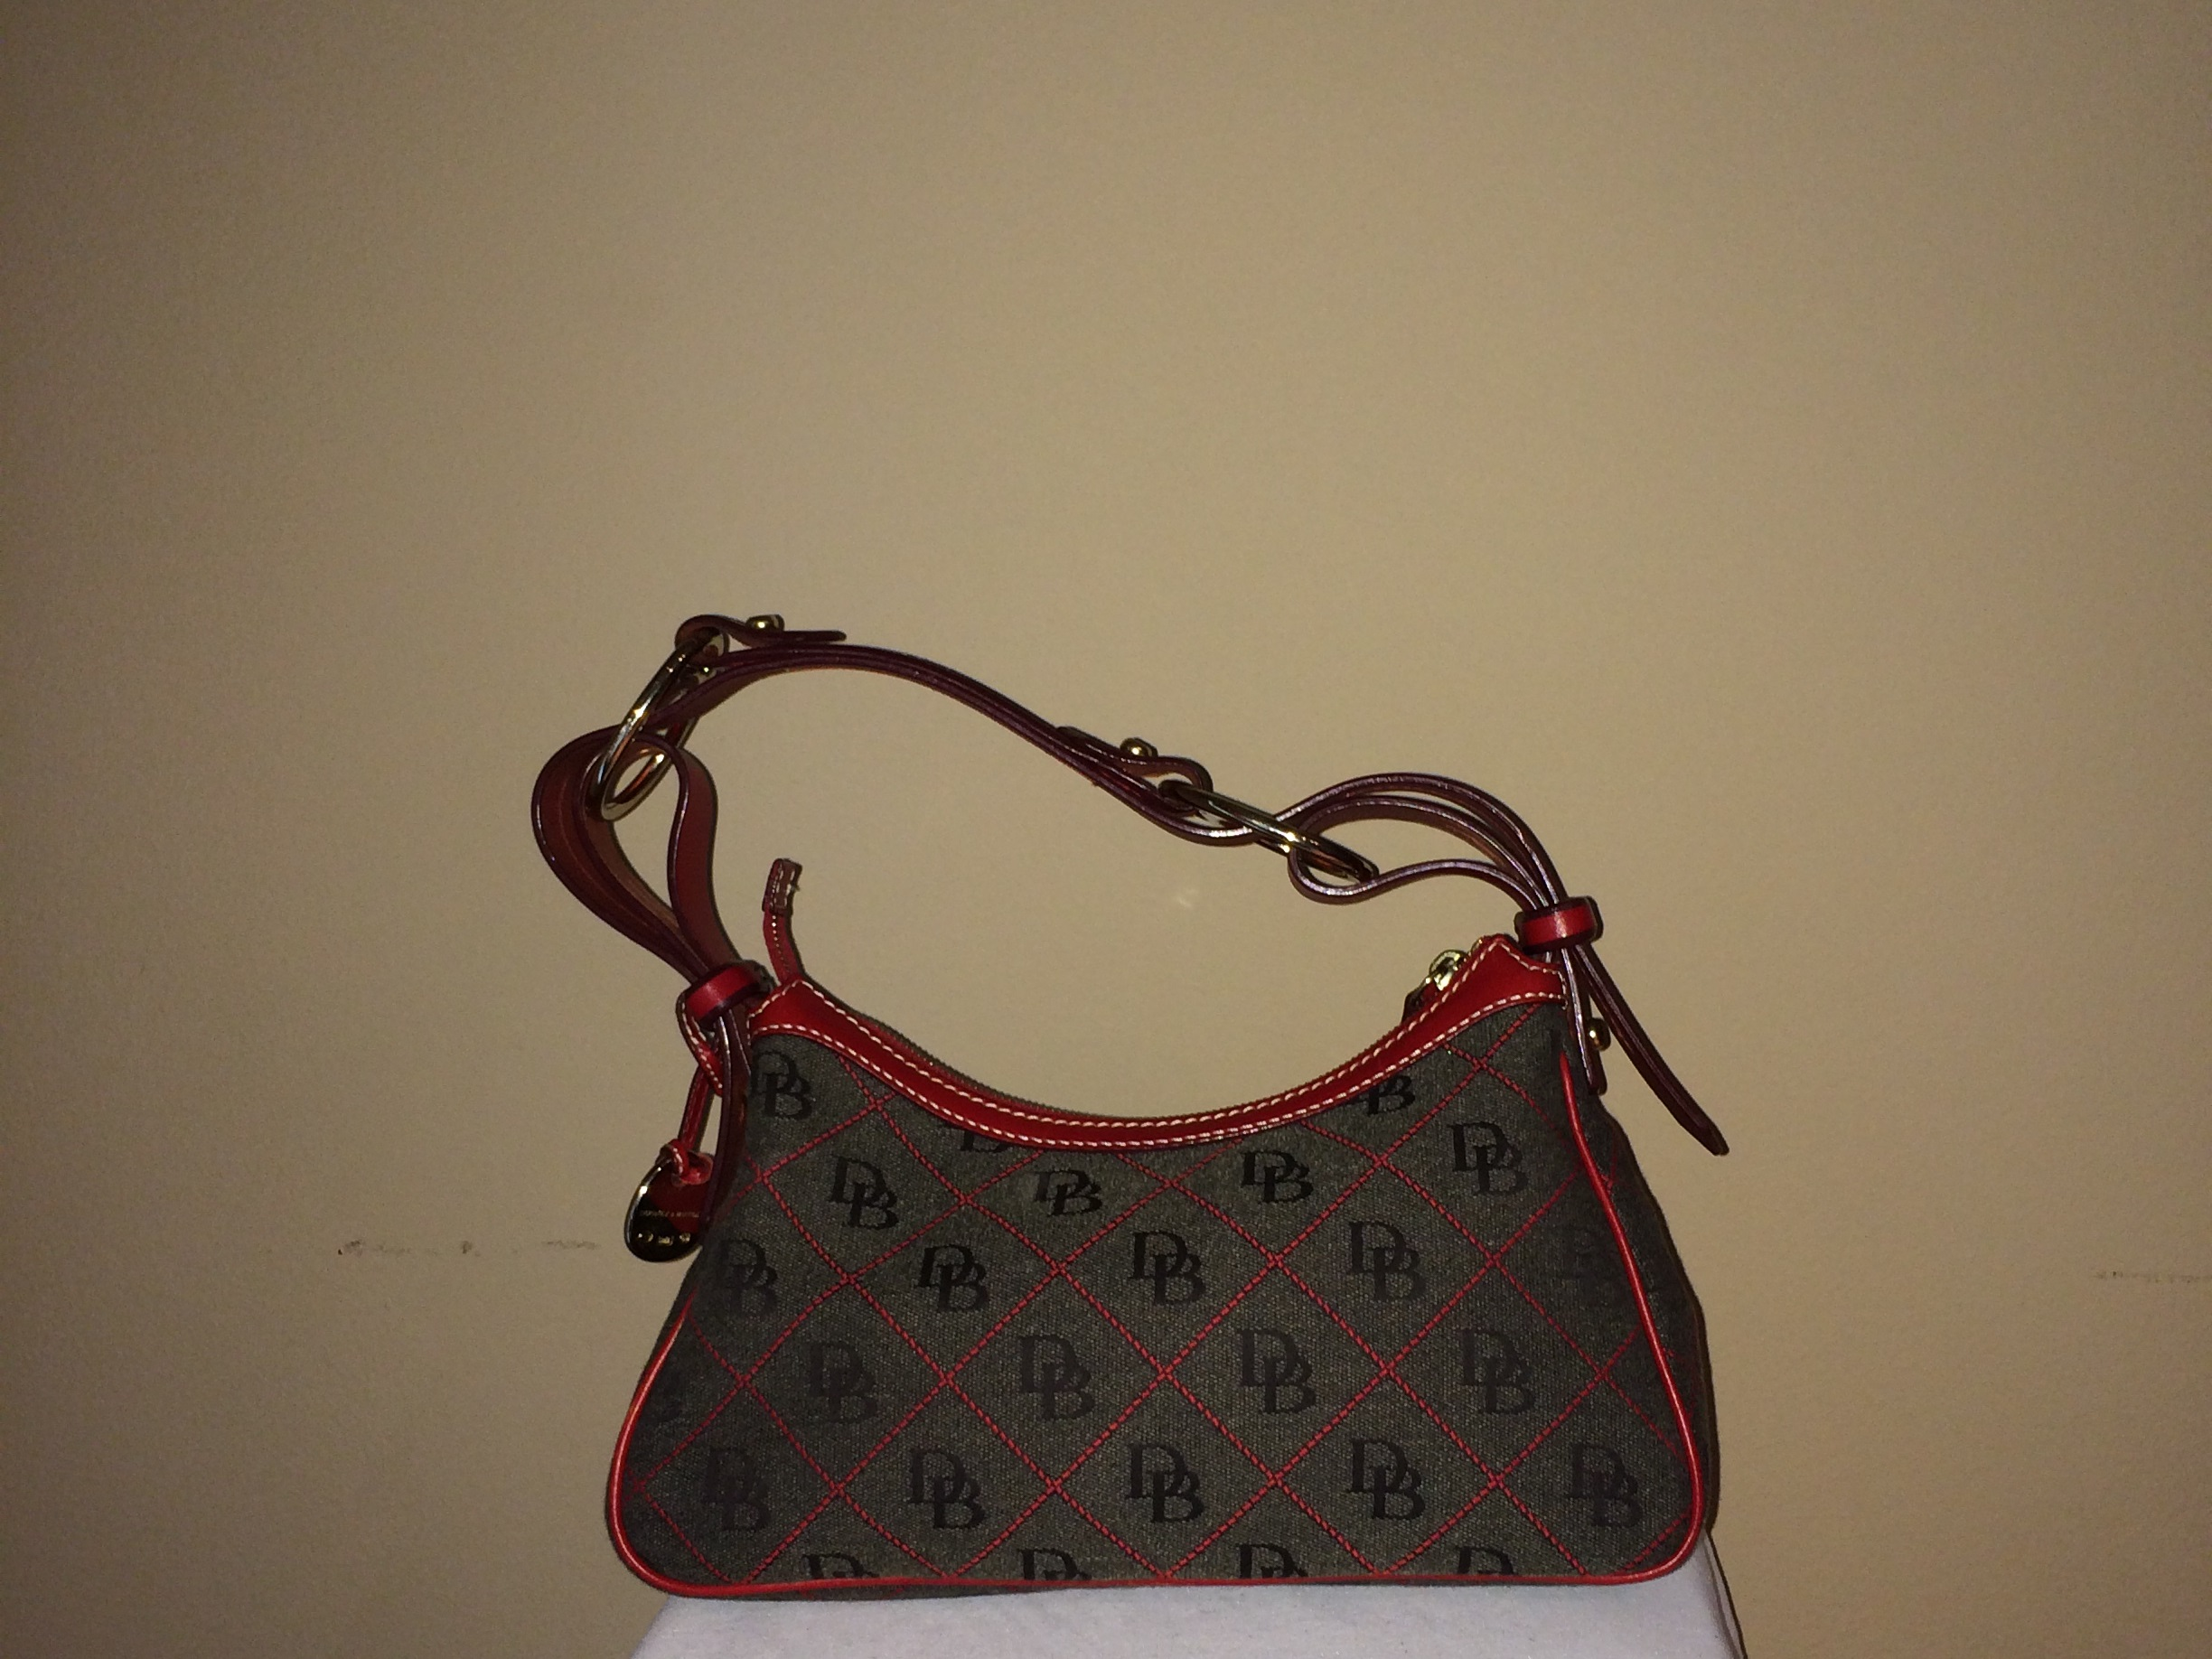 Fabric Dooney and Bourke - rear